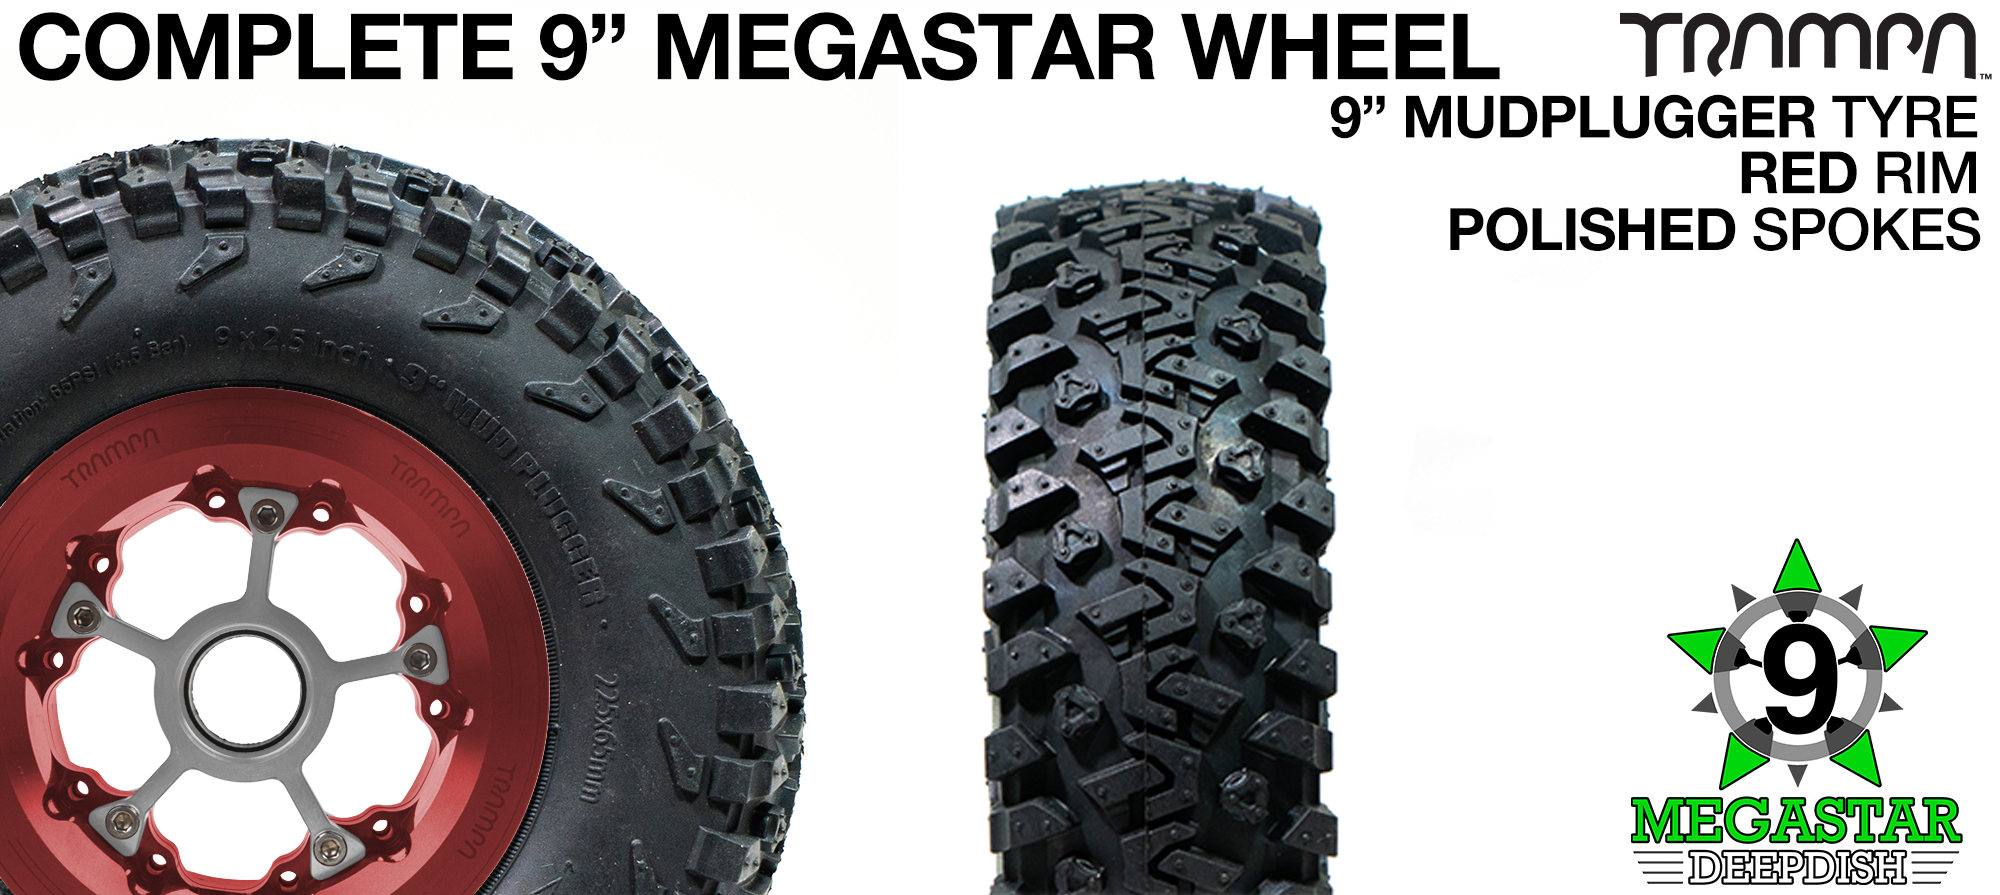 RED 9 inch Deep-Dish MEGASTARS Rim with POLISHED Spokes & 9 Inch MUDPLUGGER Tyre